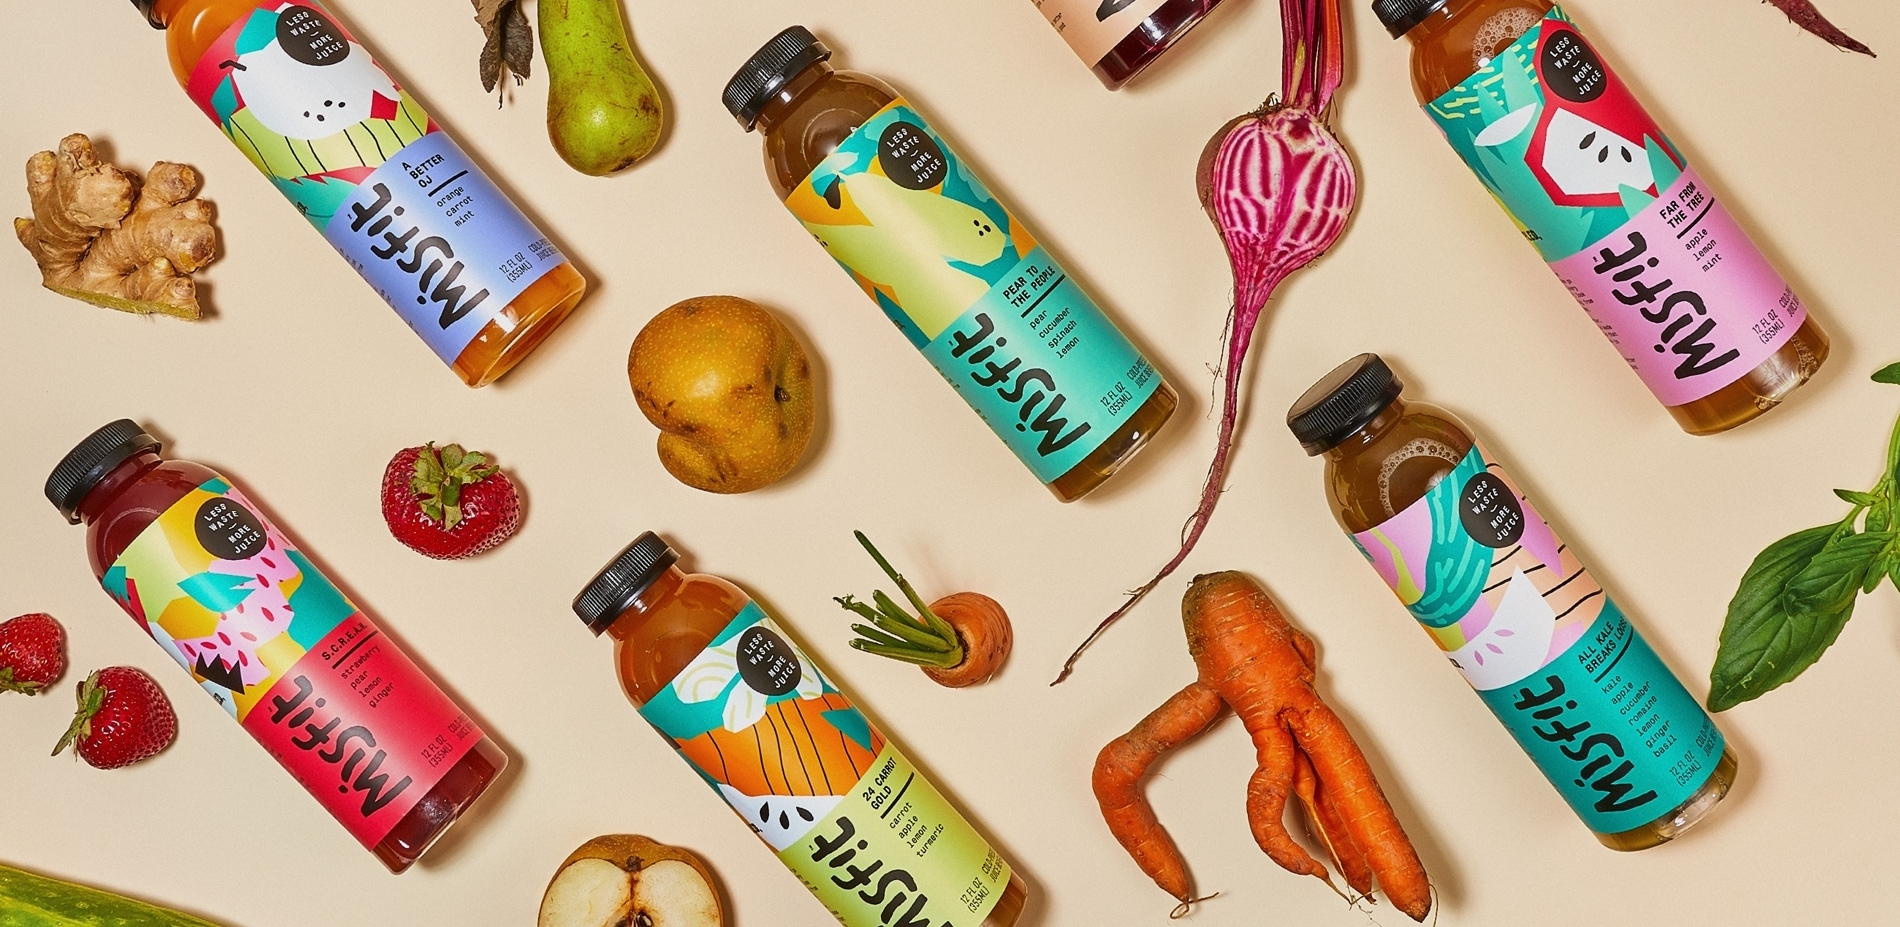 Challenger to Watch: Misfit Juicery